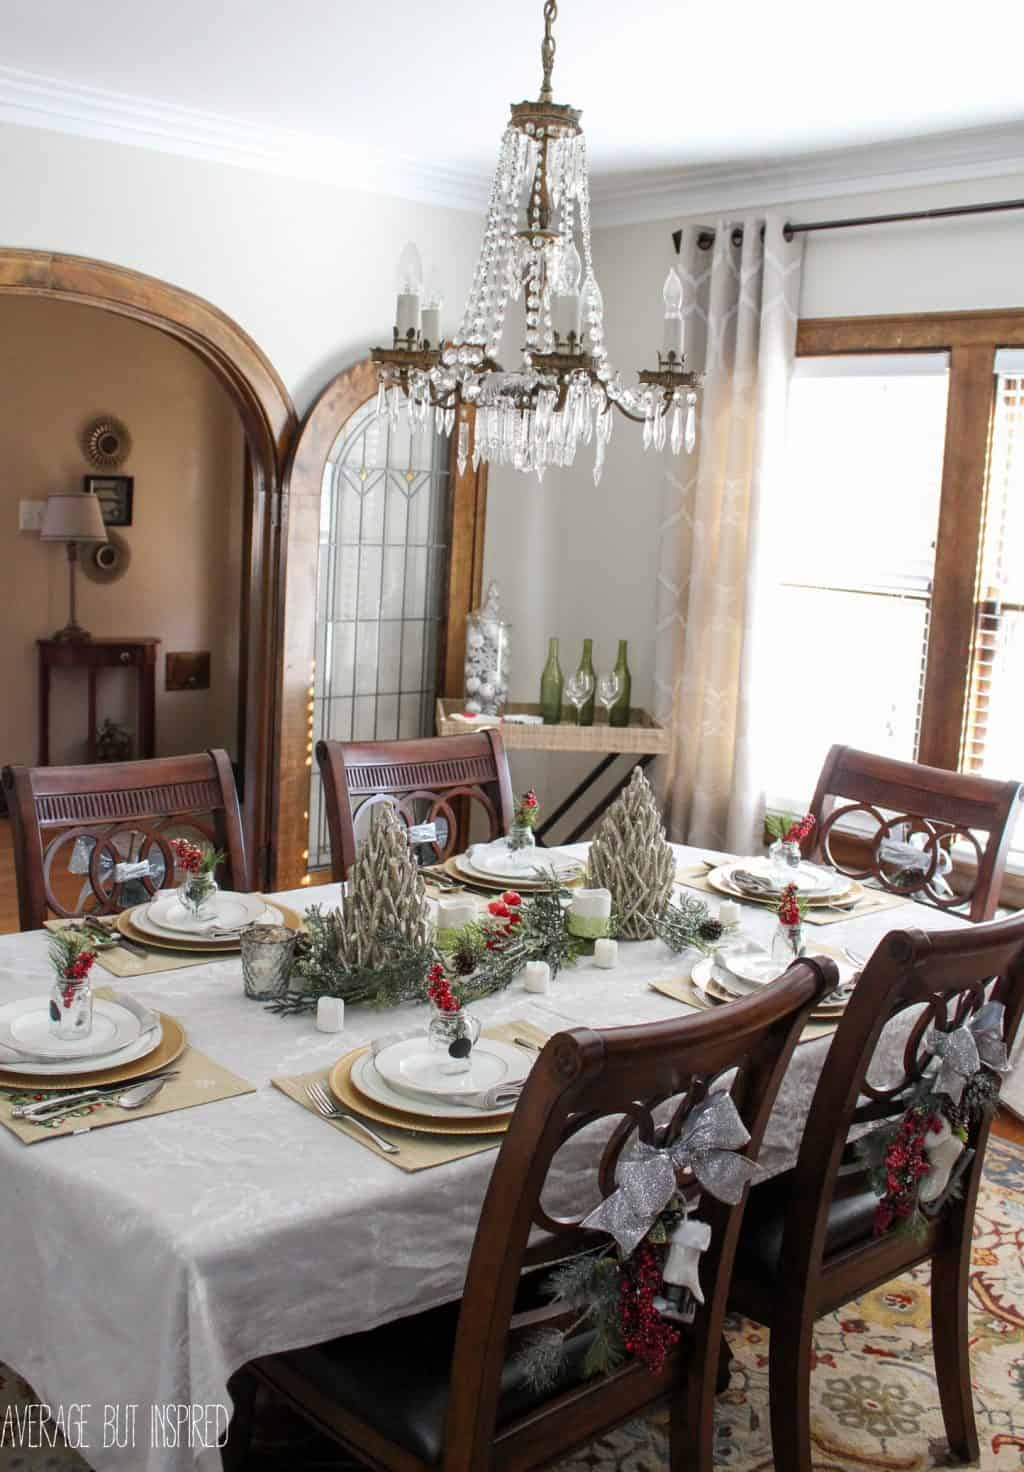 5 tips for decorating the dining room for christmas for Dining room decor ideas 2015